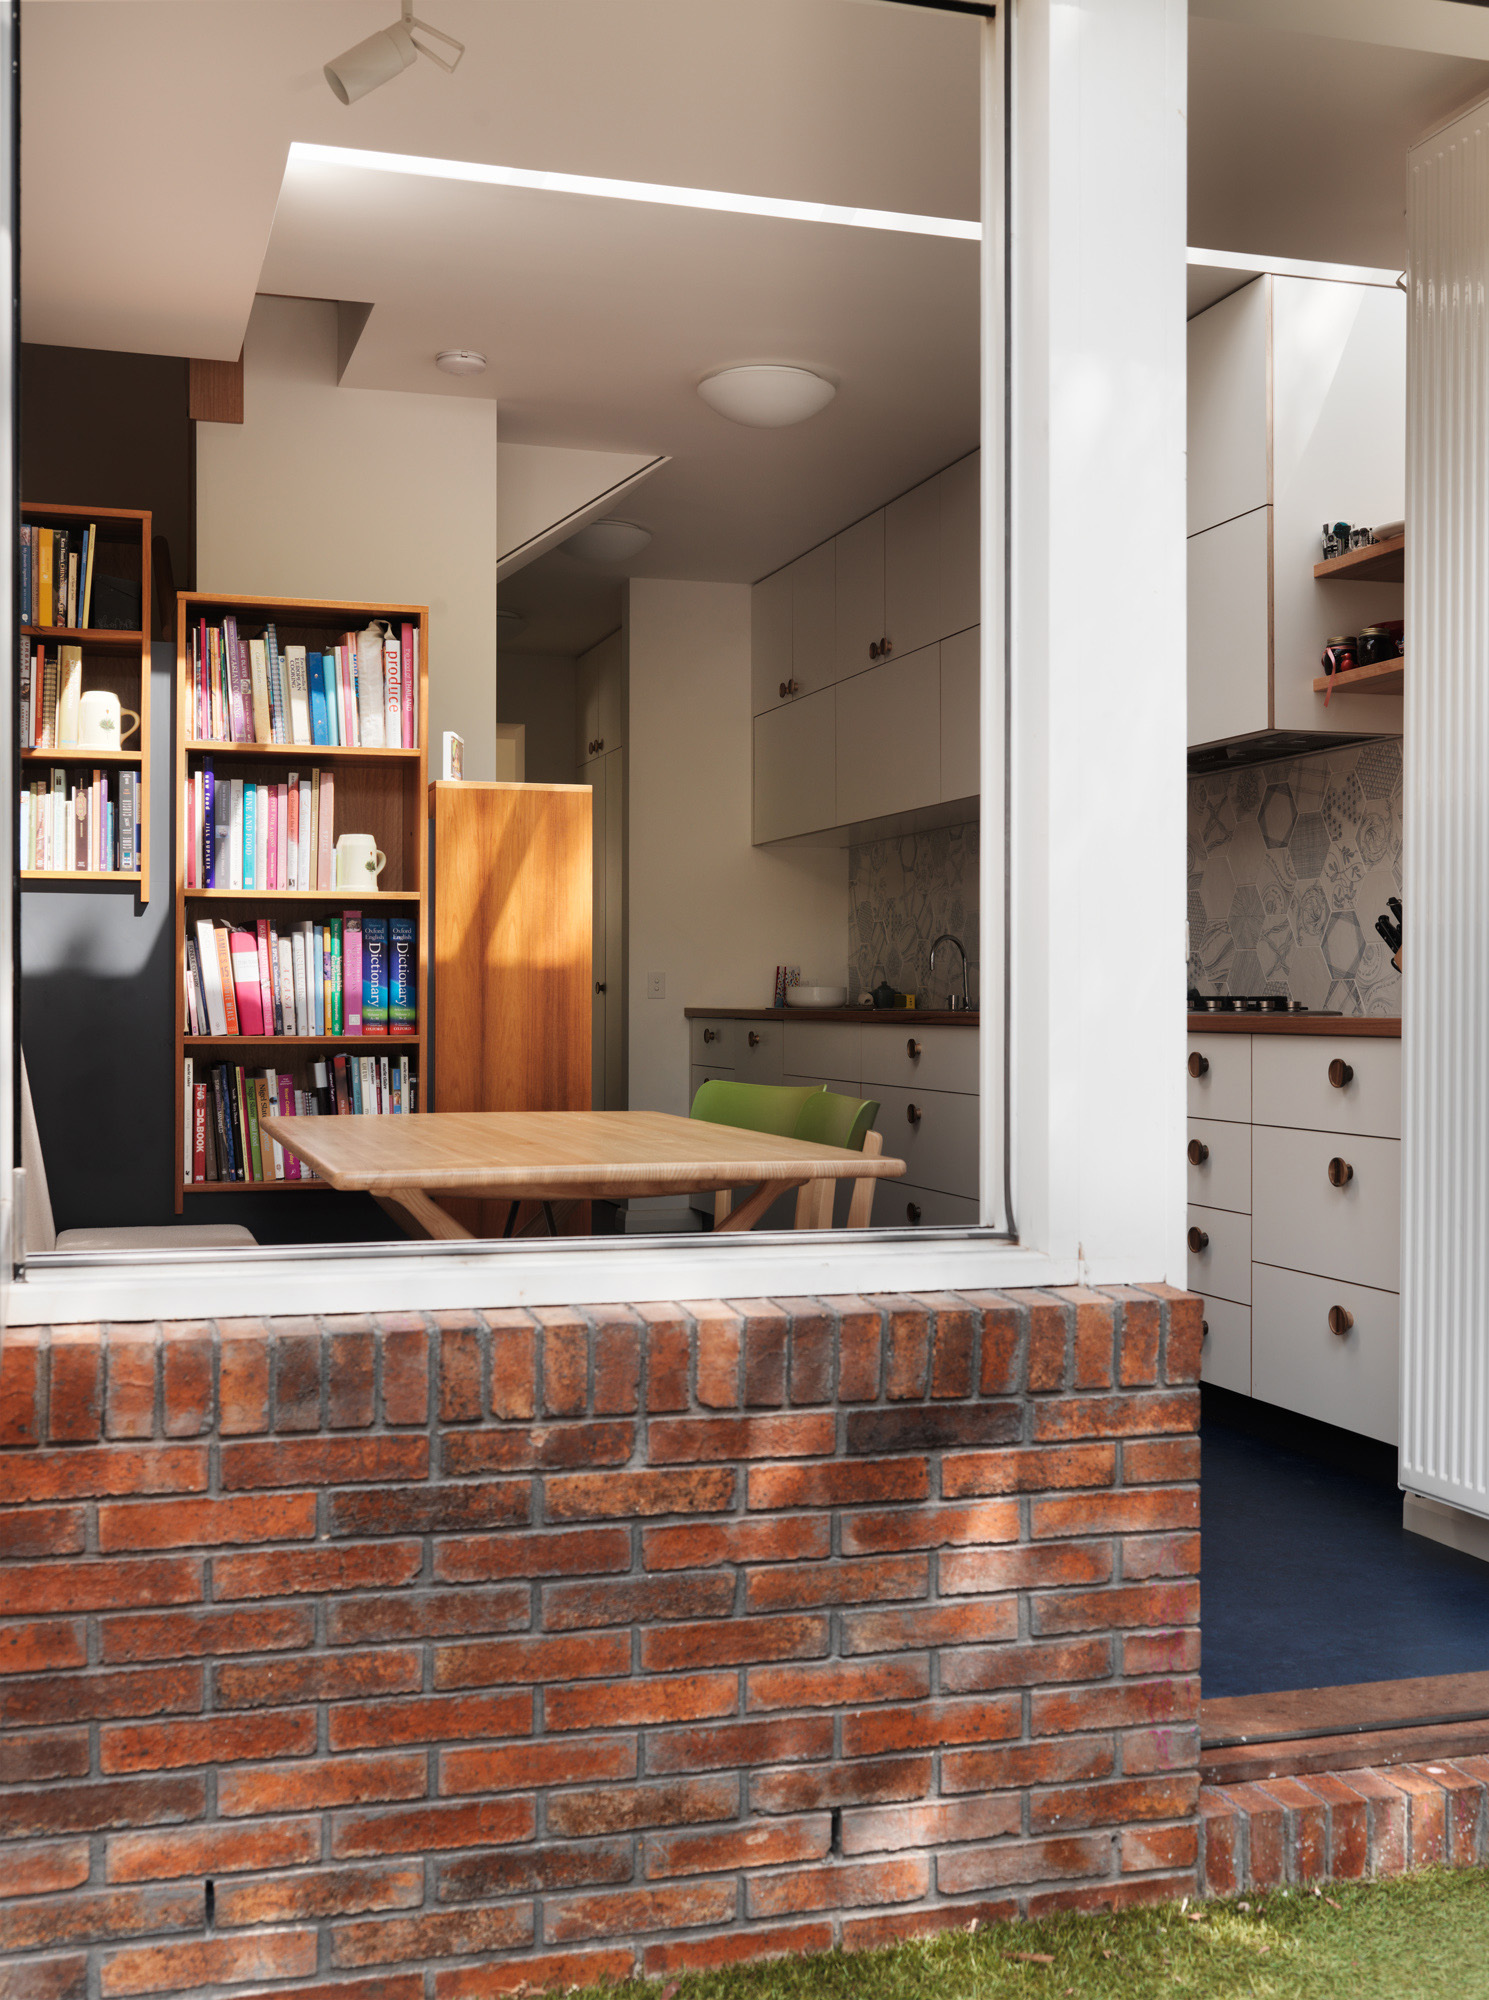 Compact family meals and kitchen area